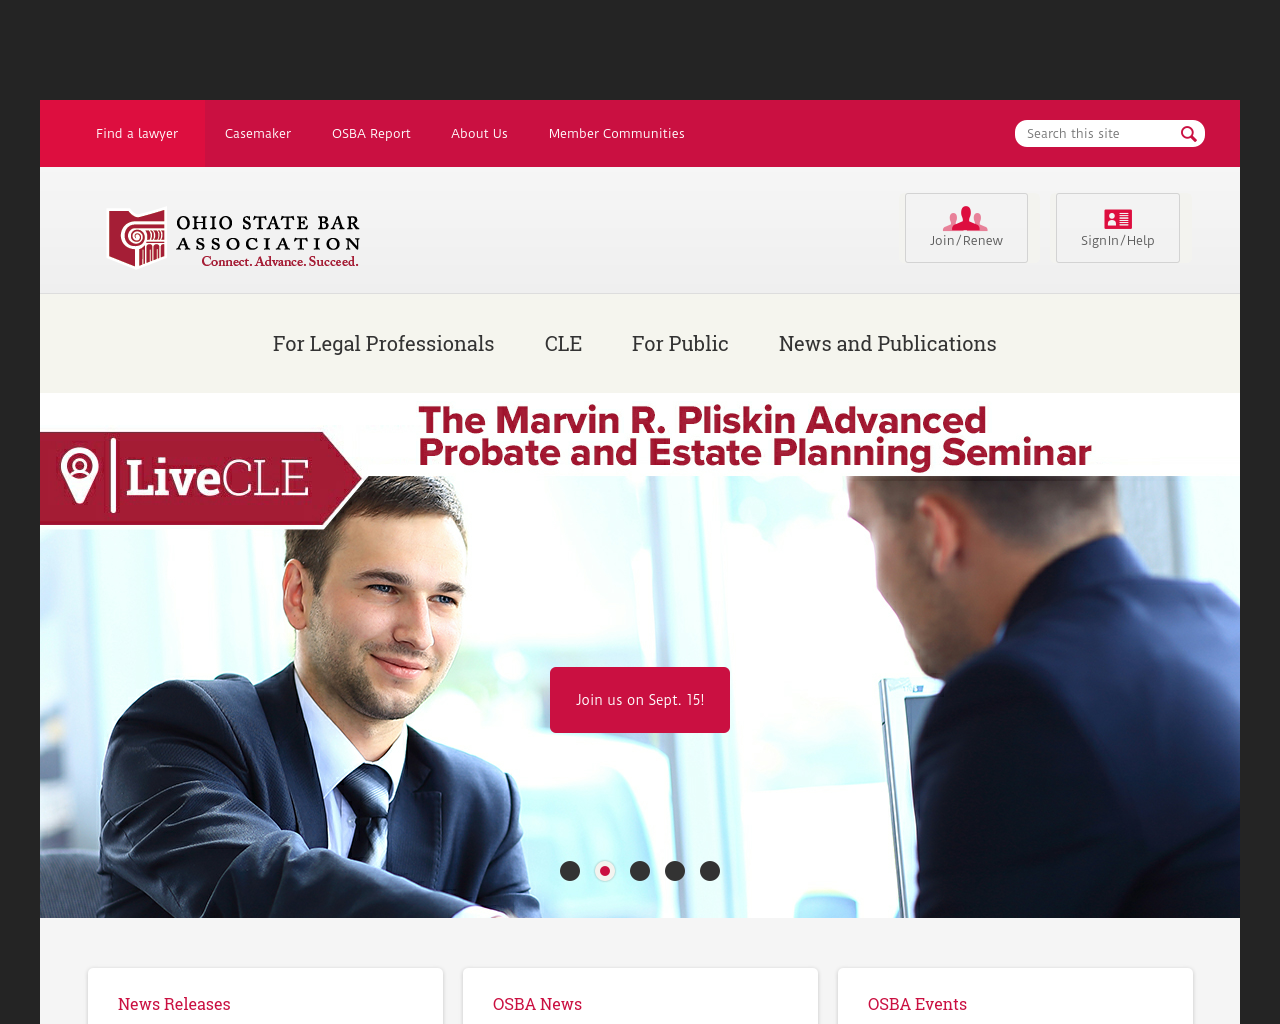 Ohio-State-Bar-Association-Advertising-Reviews-Pricing